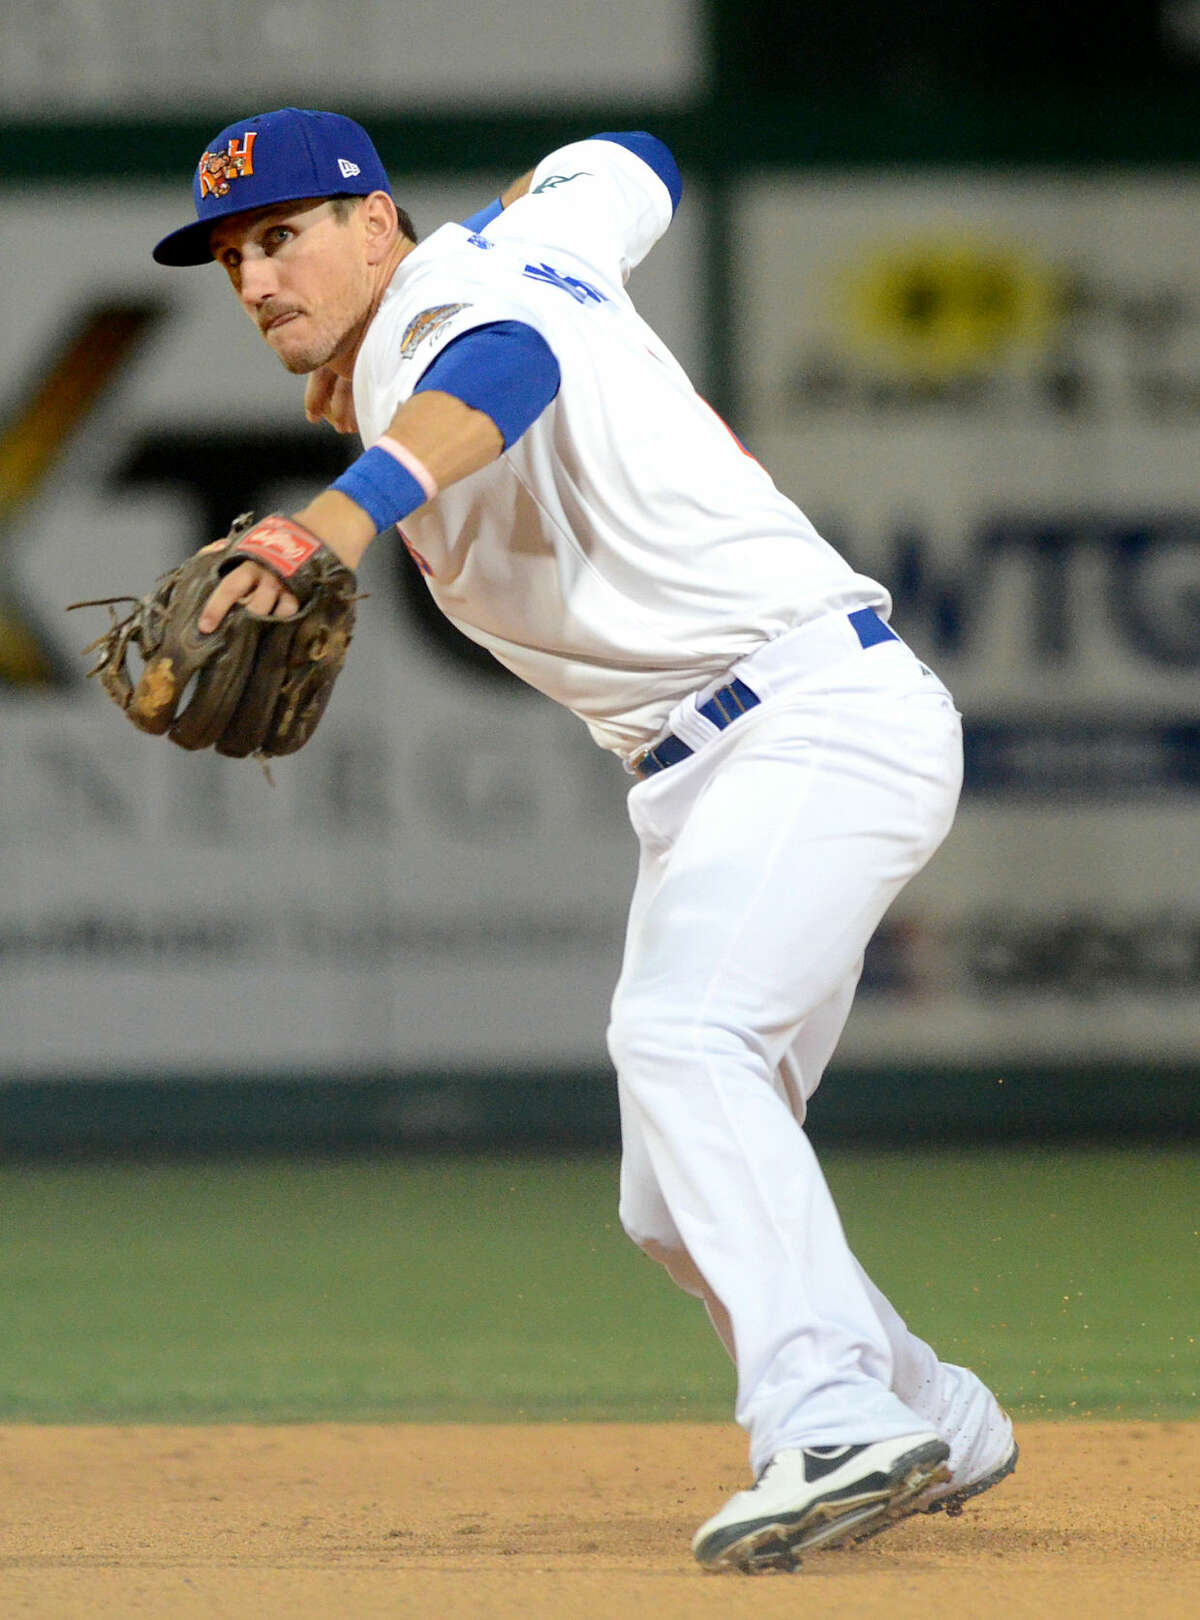 Rockhounds' Colin Walsh throws to first base for an out against San Antonio on Thursday, April 23, 2015, at Security Bank Ballpark. James Durbin/Reporter-Telegram